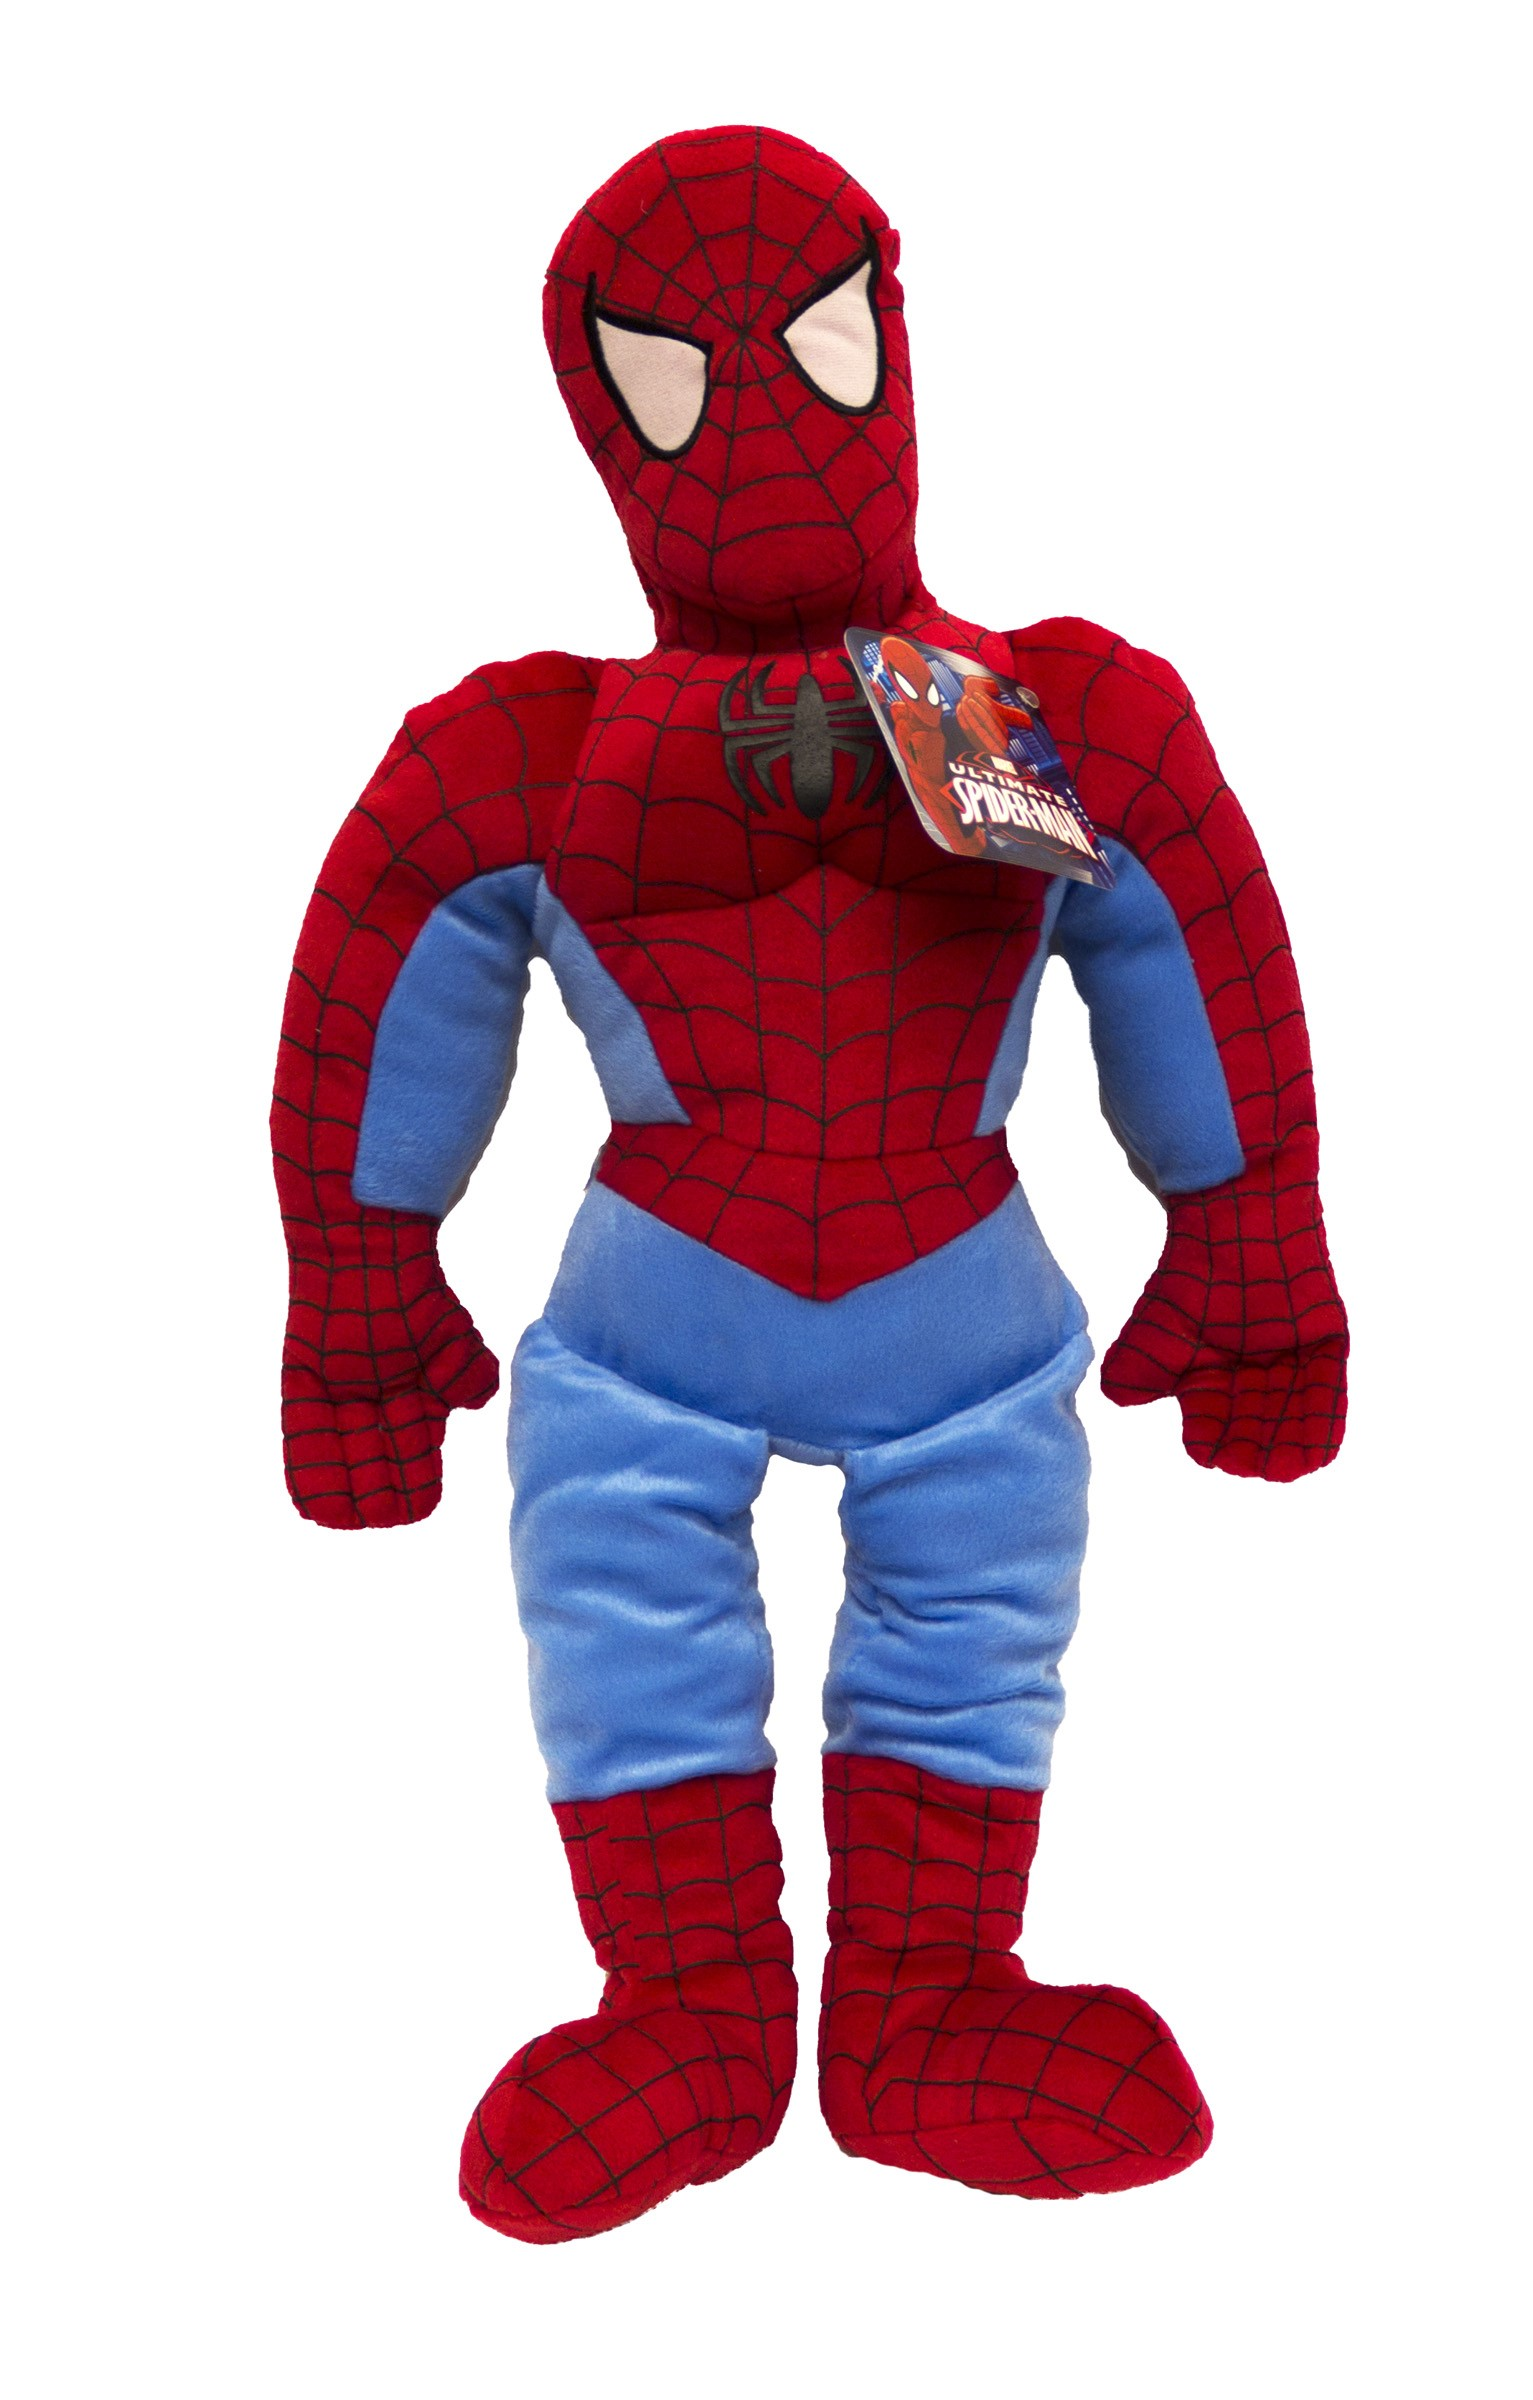 Marvel Spiderman Ultimate Pillowtime Pal, Kid's Bedding by Jay Franco and Sons, Inc.